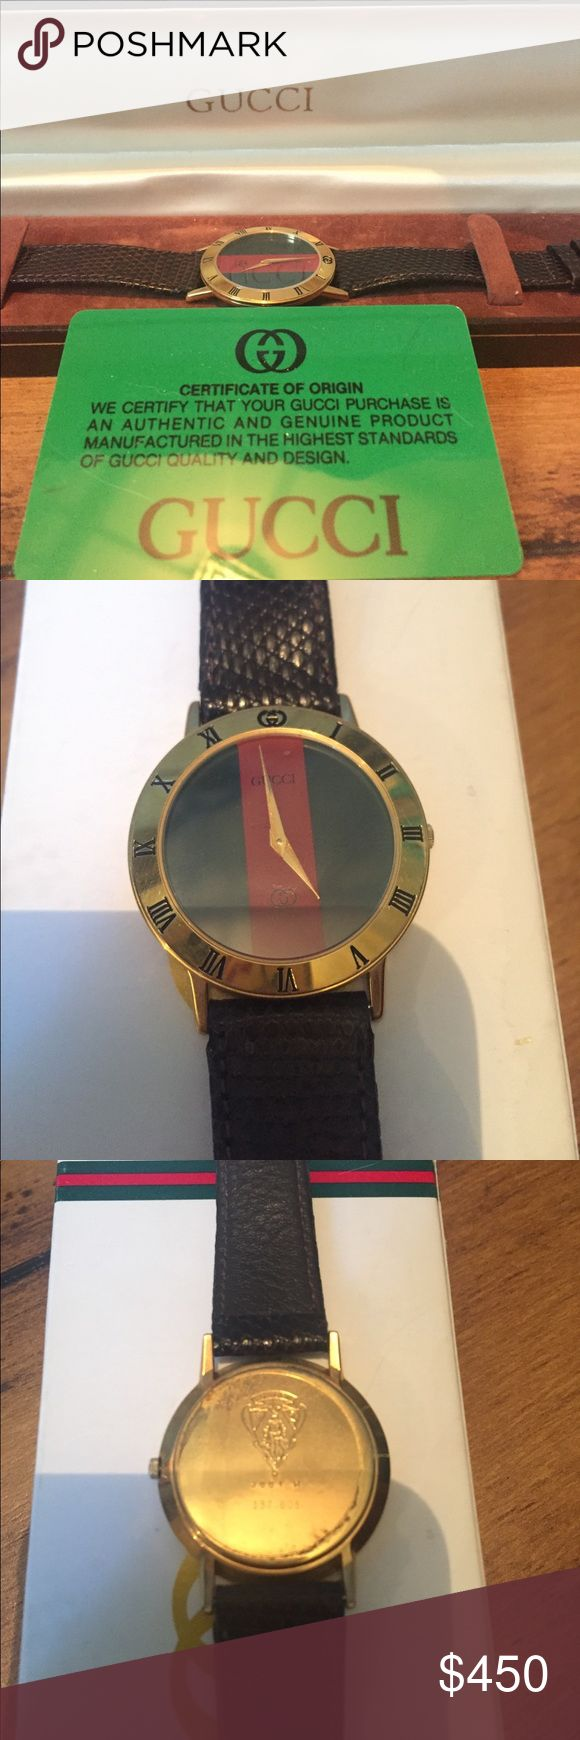 Authentic Vintage Gucci Watch This piece is in great condition, although it's about time to change the battery. It comes with all the original packaging, as well as a certificate of origin and authenticity. Gucci Accessories Watches